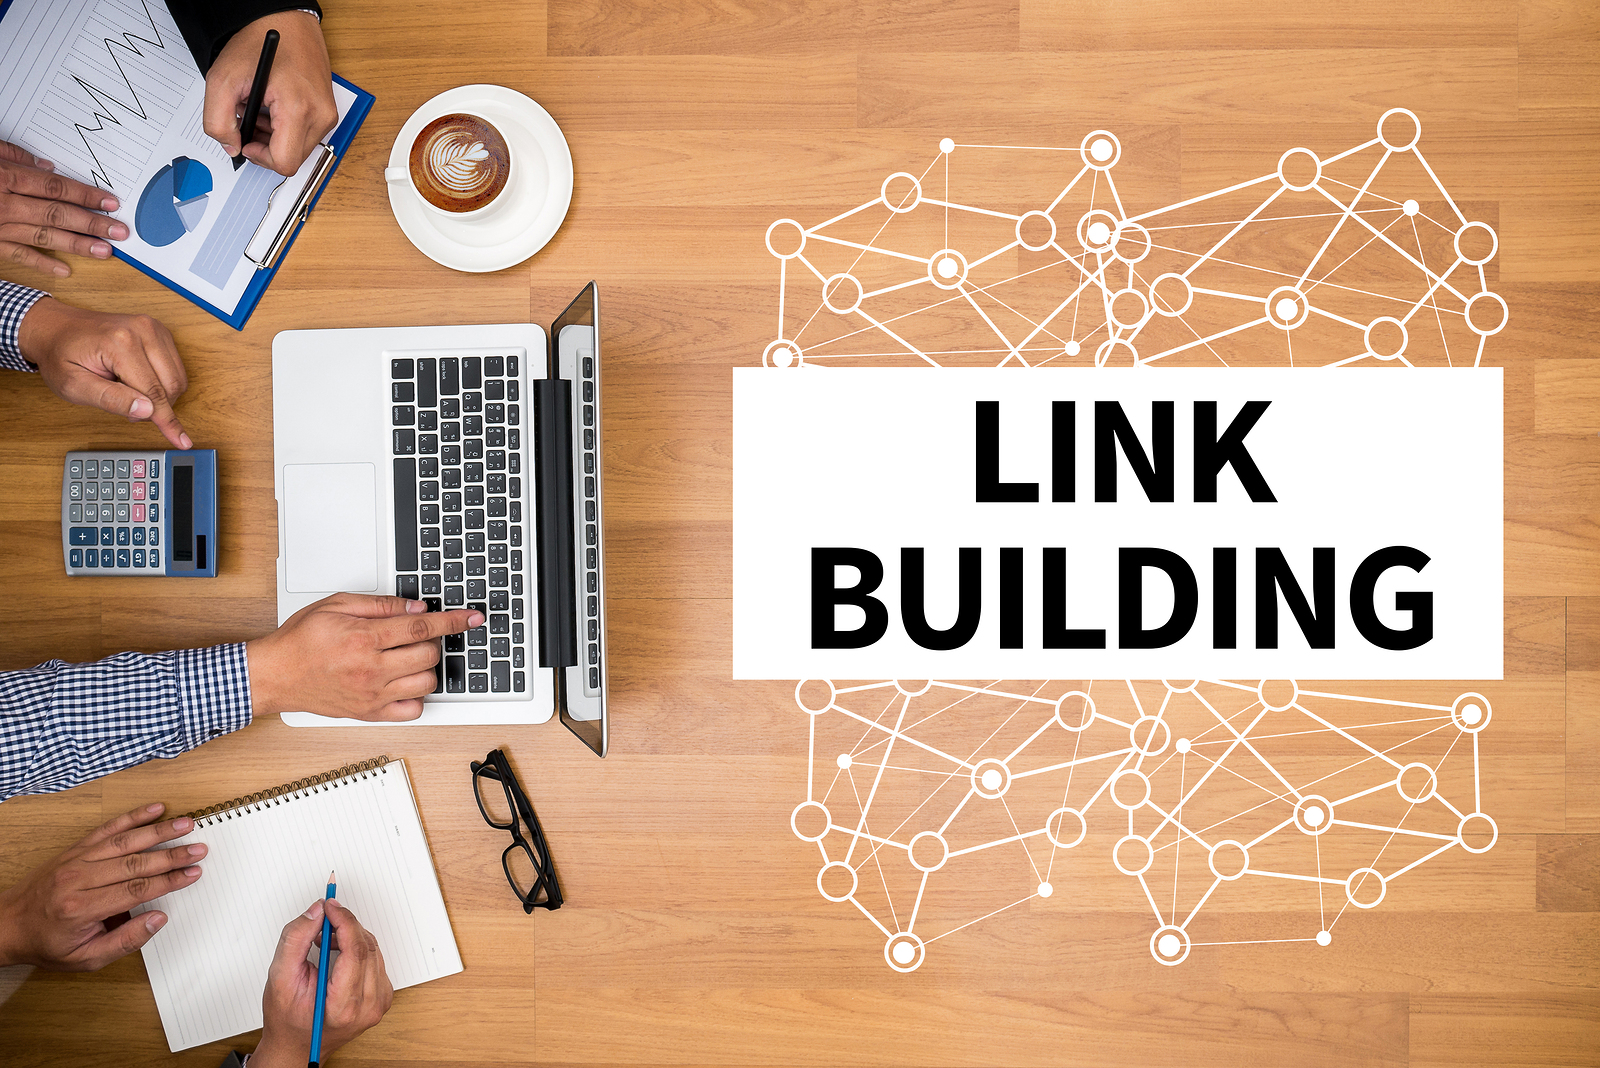 LINK BUILDING Business team hands at work with financial reports and a laptop